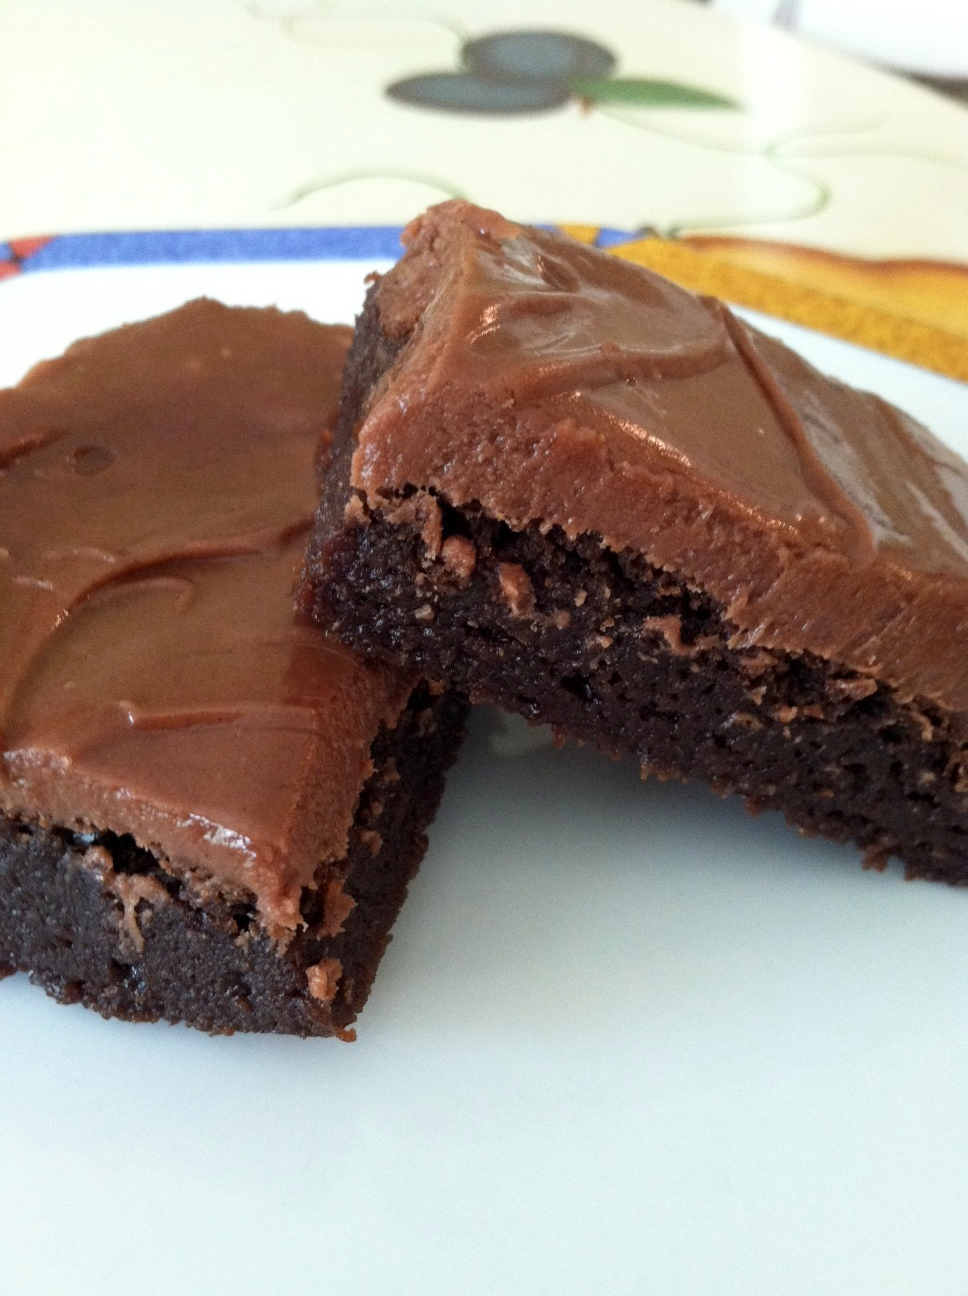 The Friendly Table: Chocolate Truffle Brownies: The Water Bath!